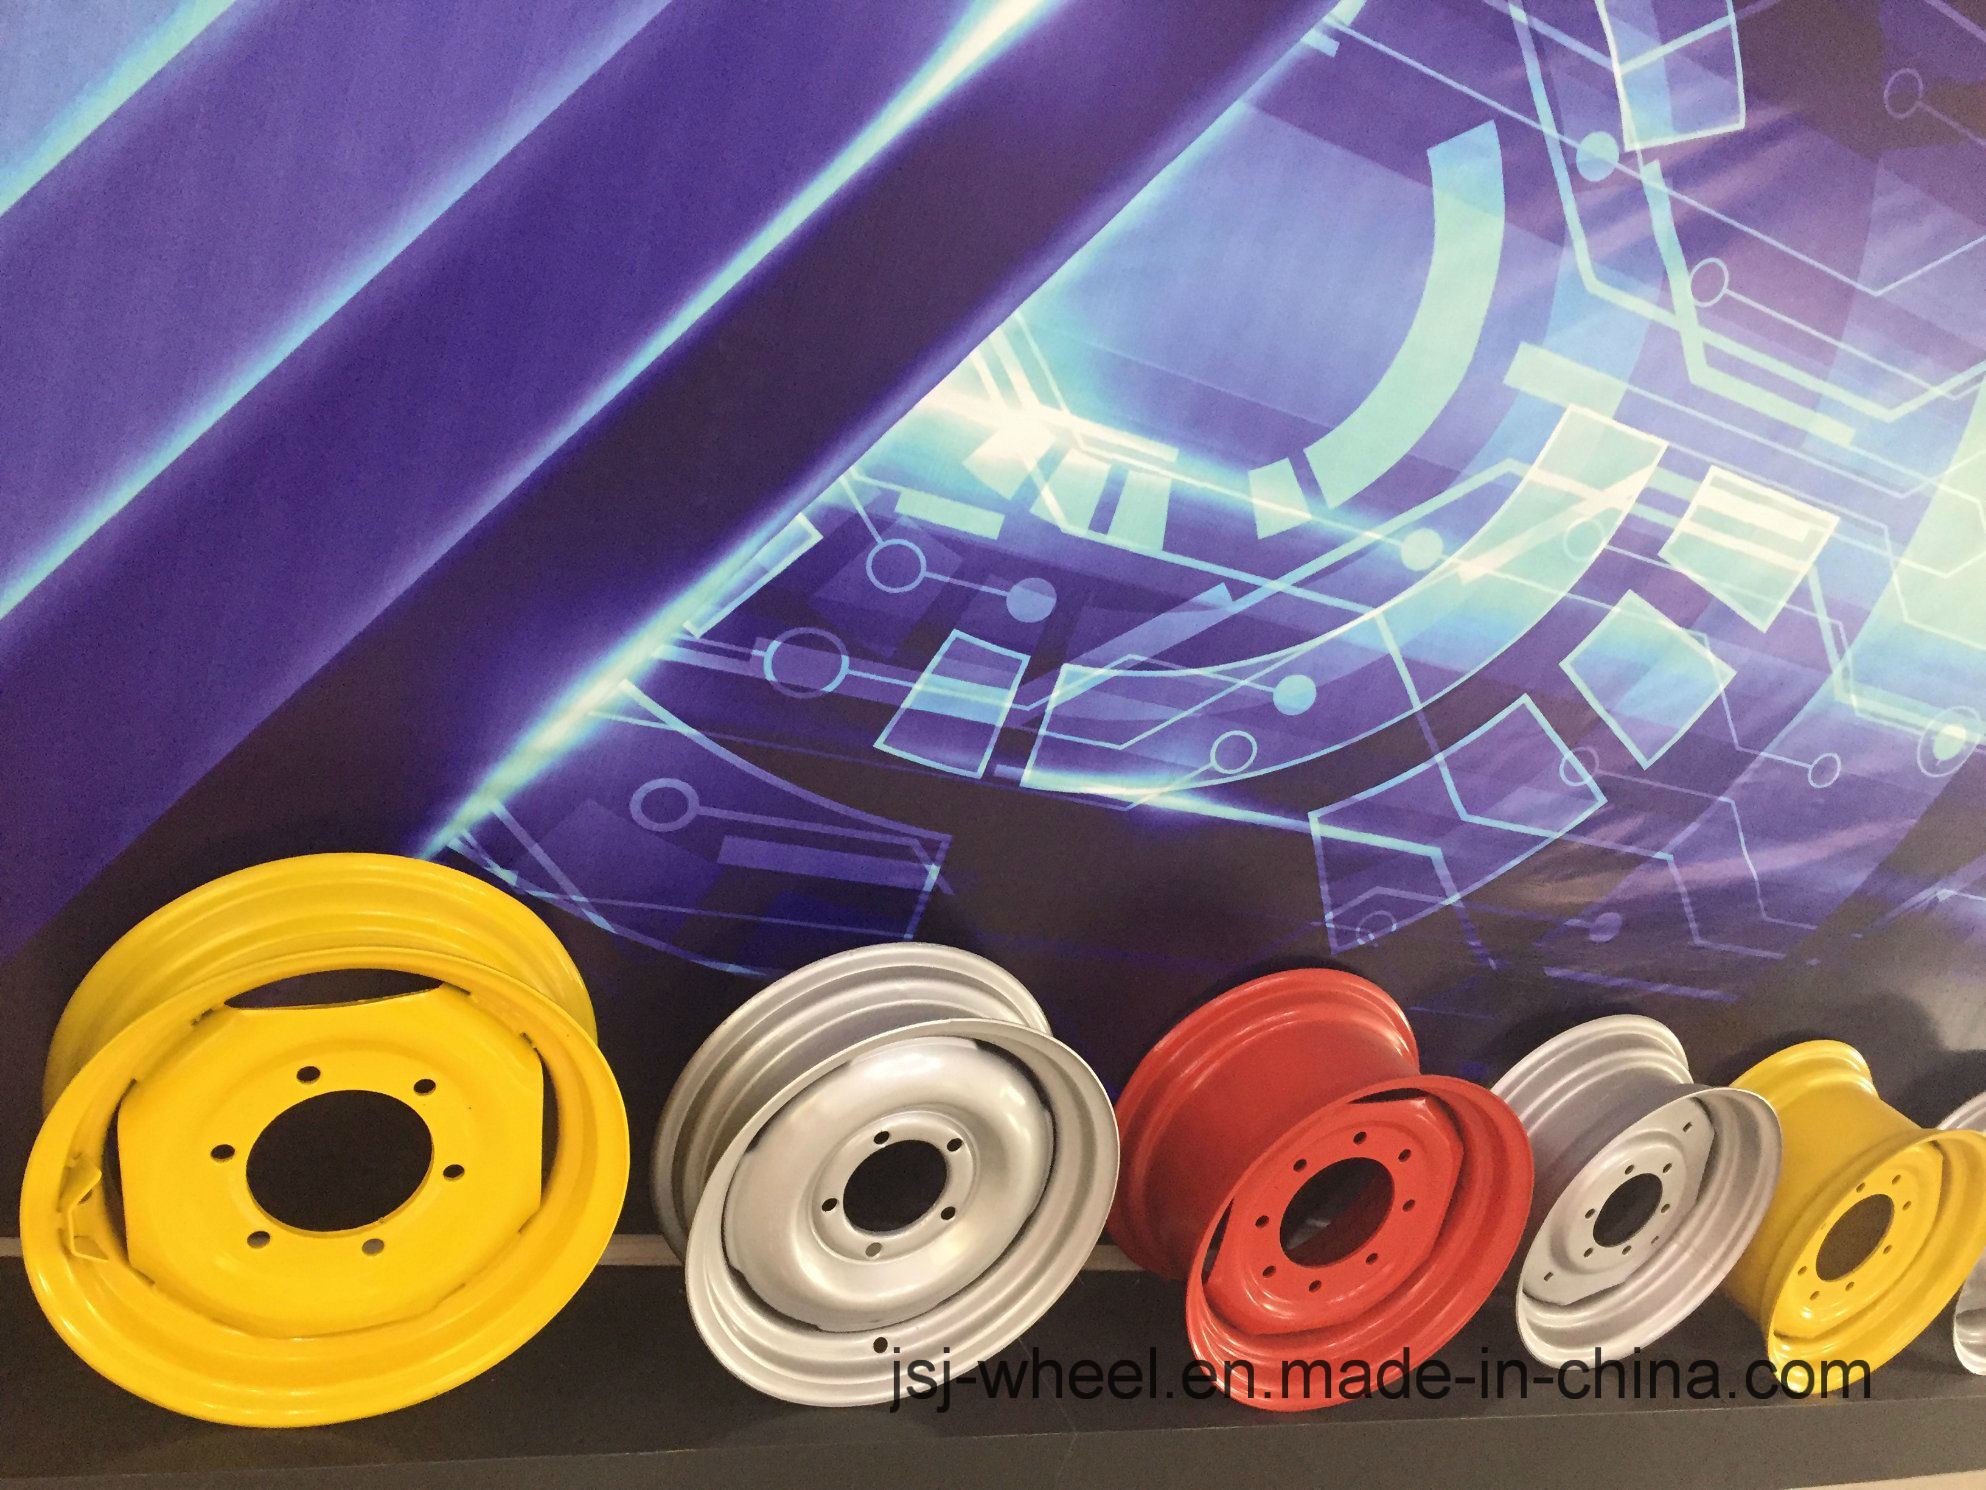 Wheel Rims for Tractor/Harvest/Machineshop Truck/Irrigation System-13